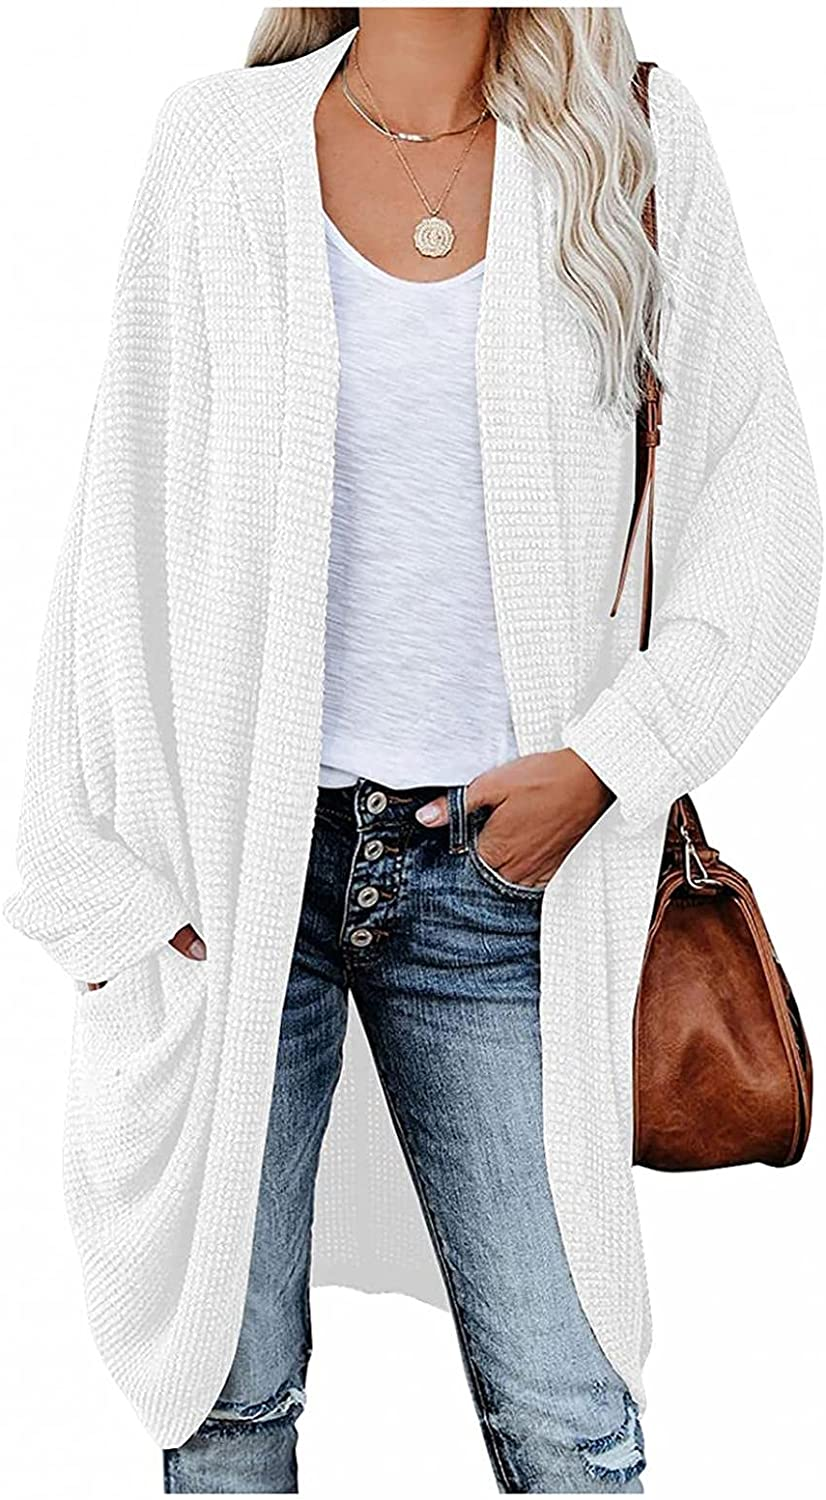 Misaky Women Oversized Cardigan Sweaters Batwing Sleeve Open Front Chunky Cable Knit Cardigan Sweater Coat